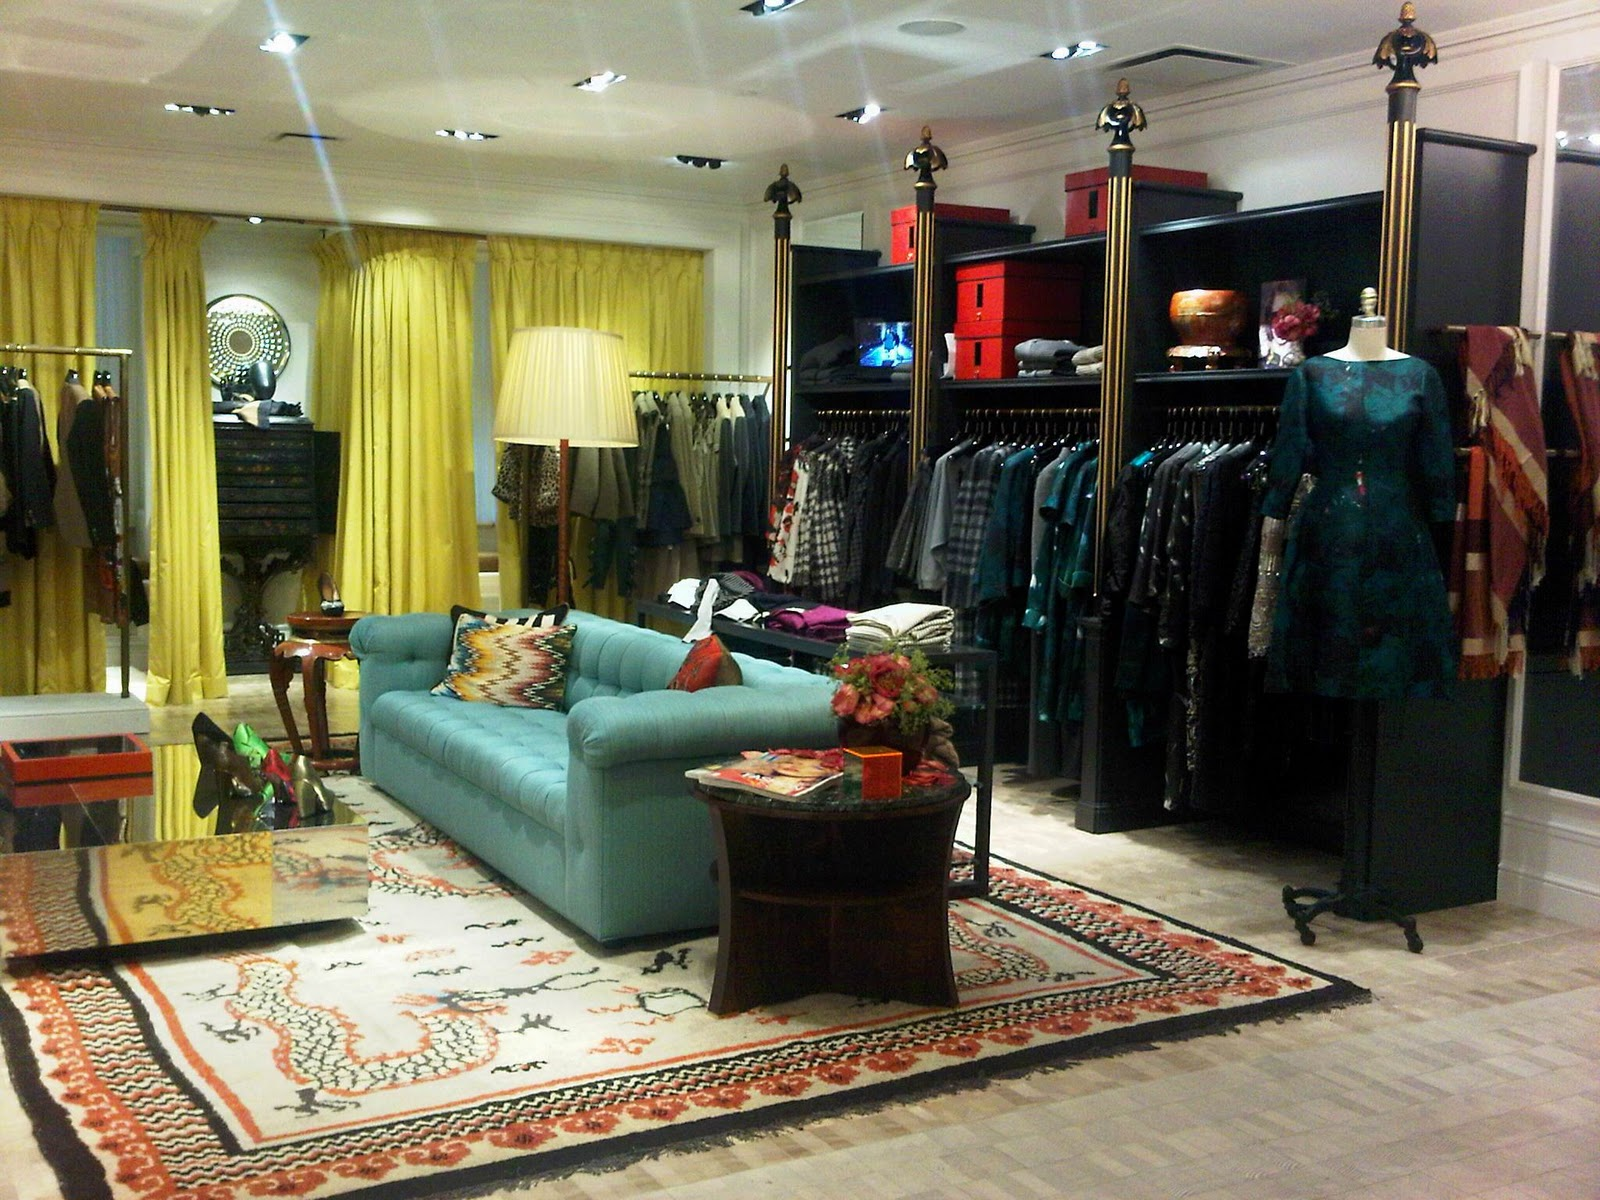 Dries van noten at bergdorfs ellegant home design for Boutique interior design